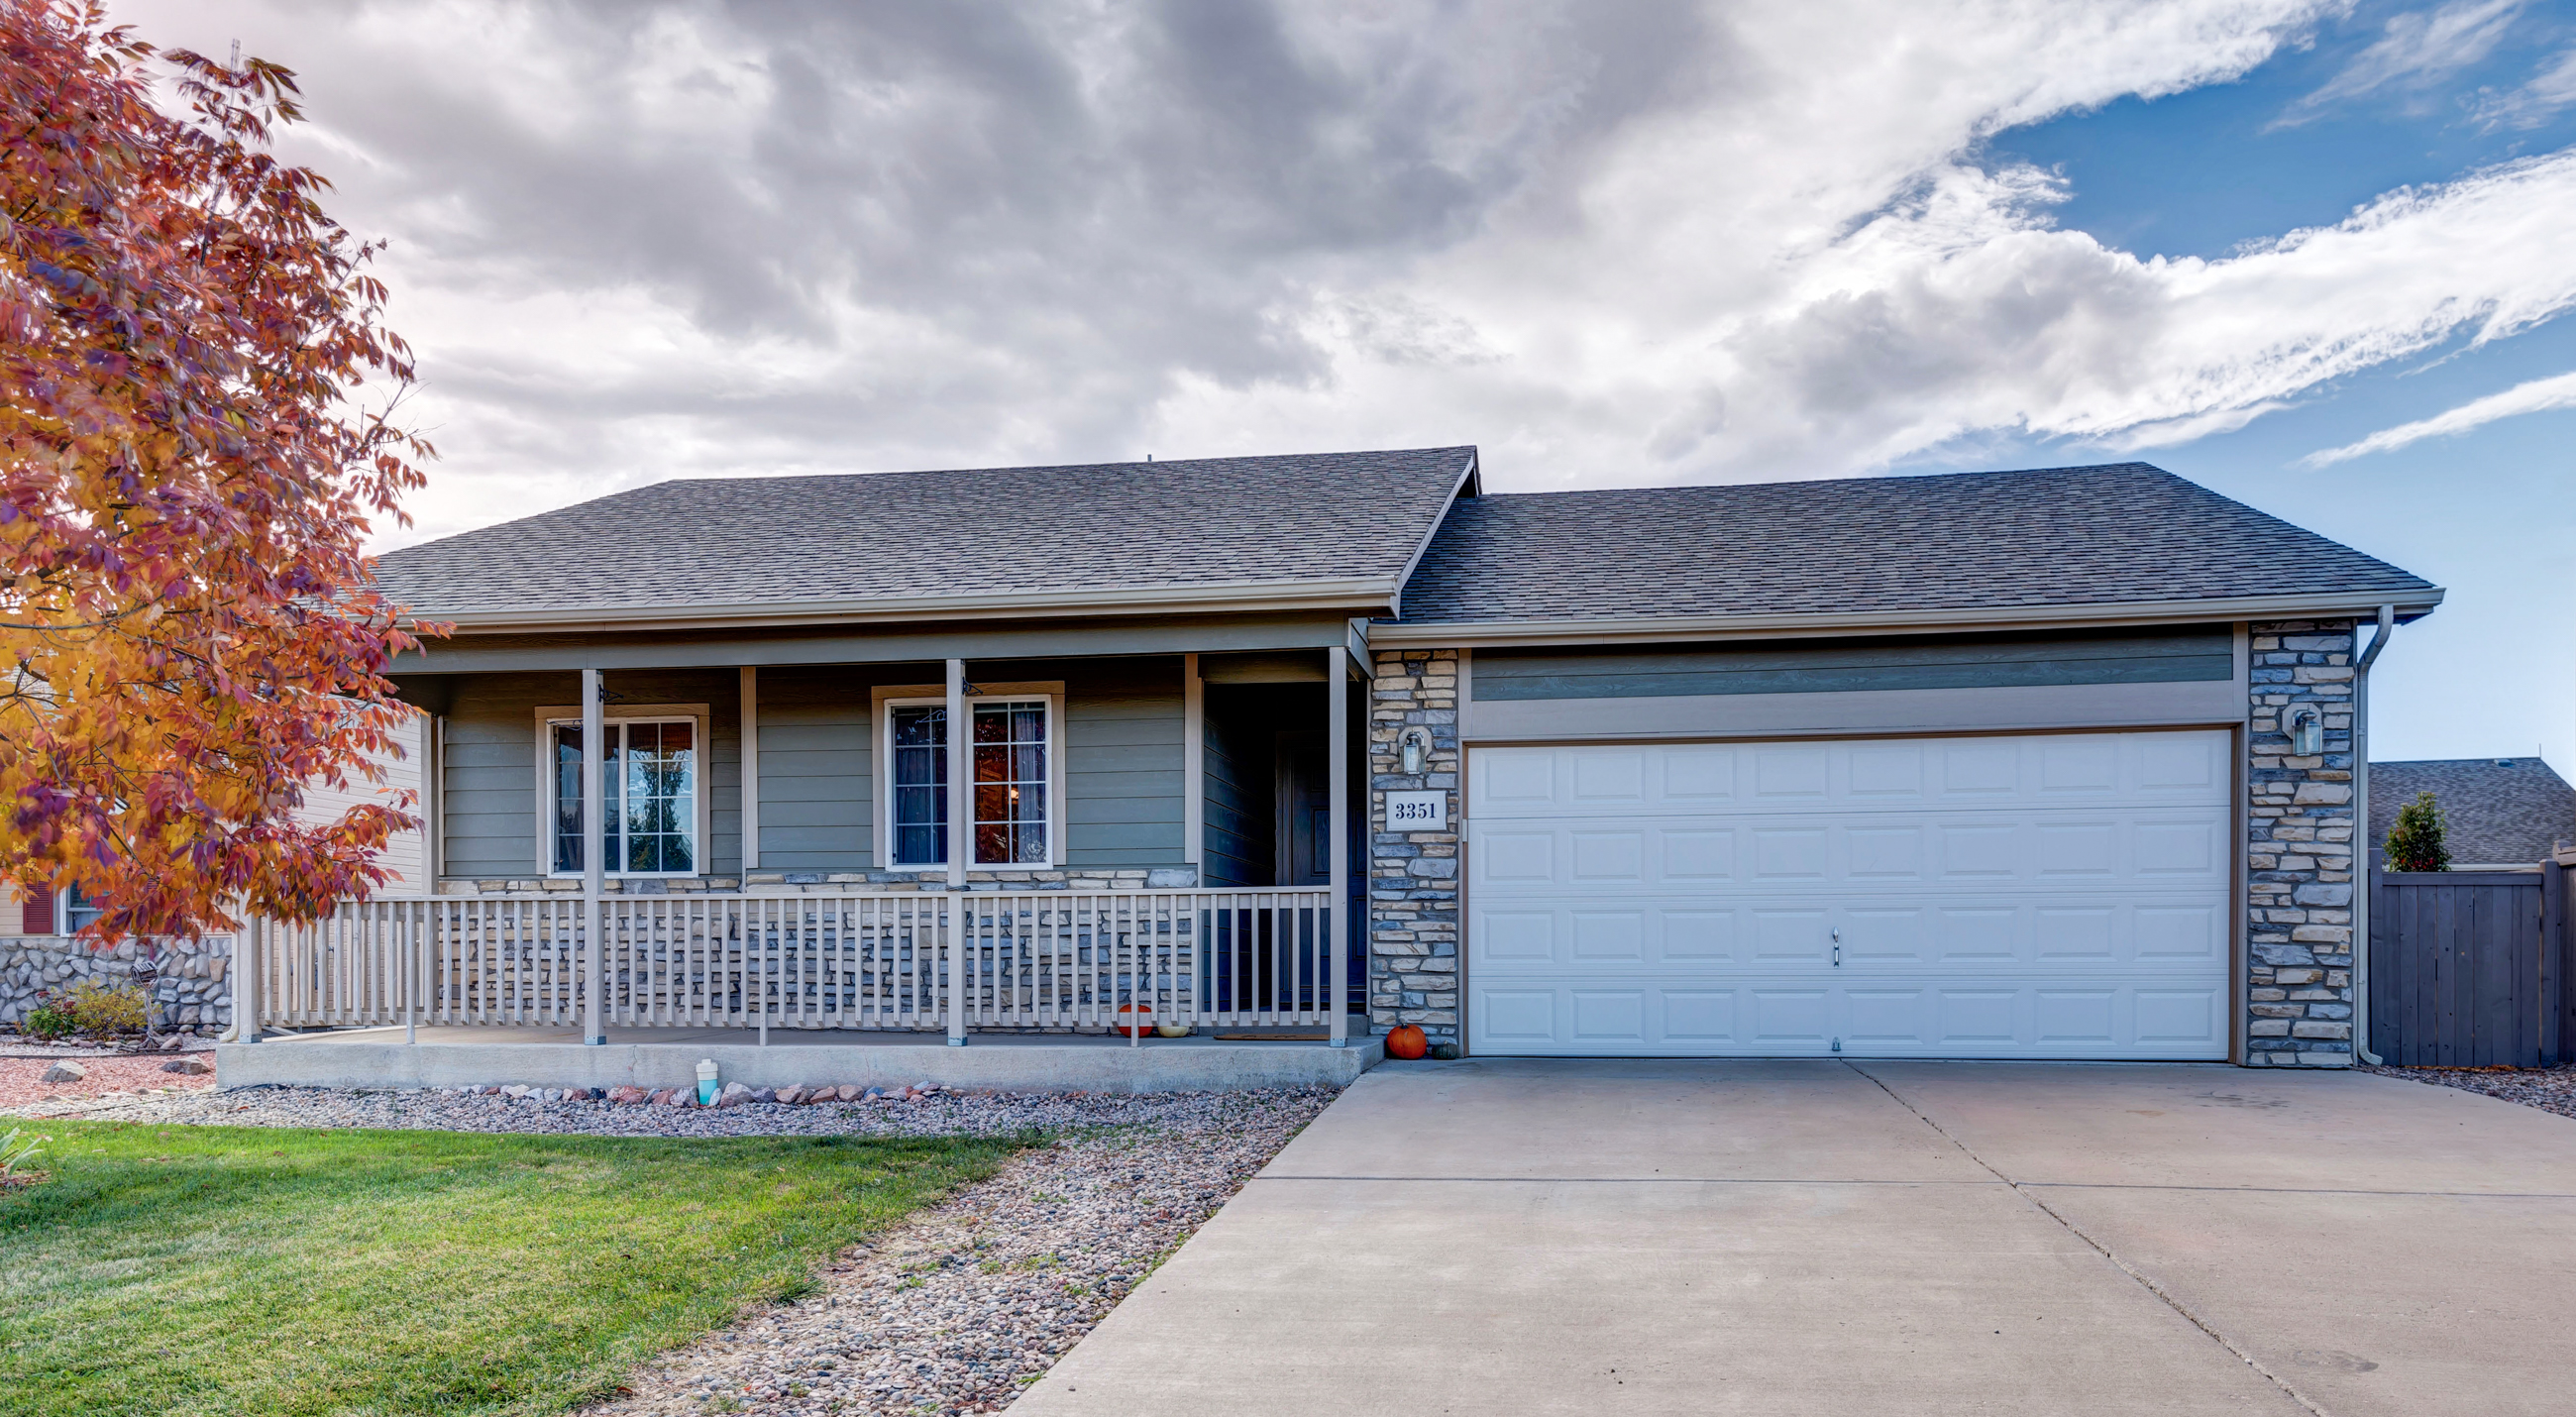 home for sale in northern colorado sold fort collins real estate by angie spangler